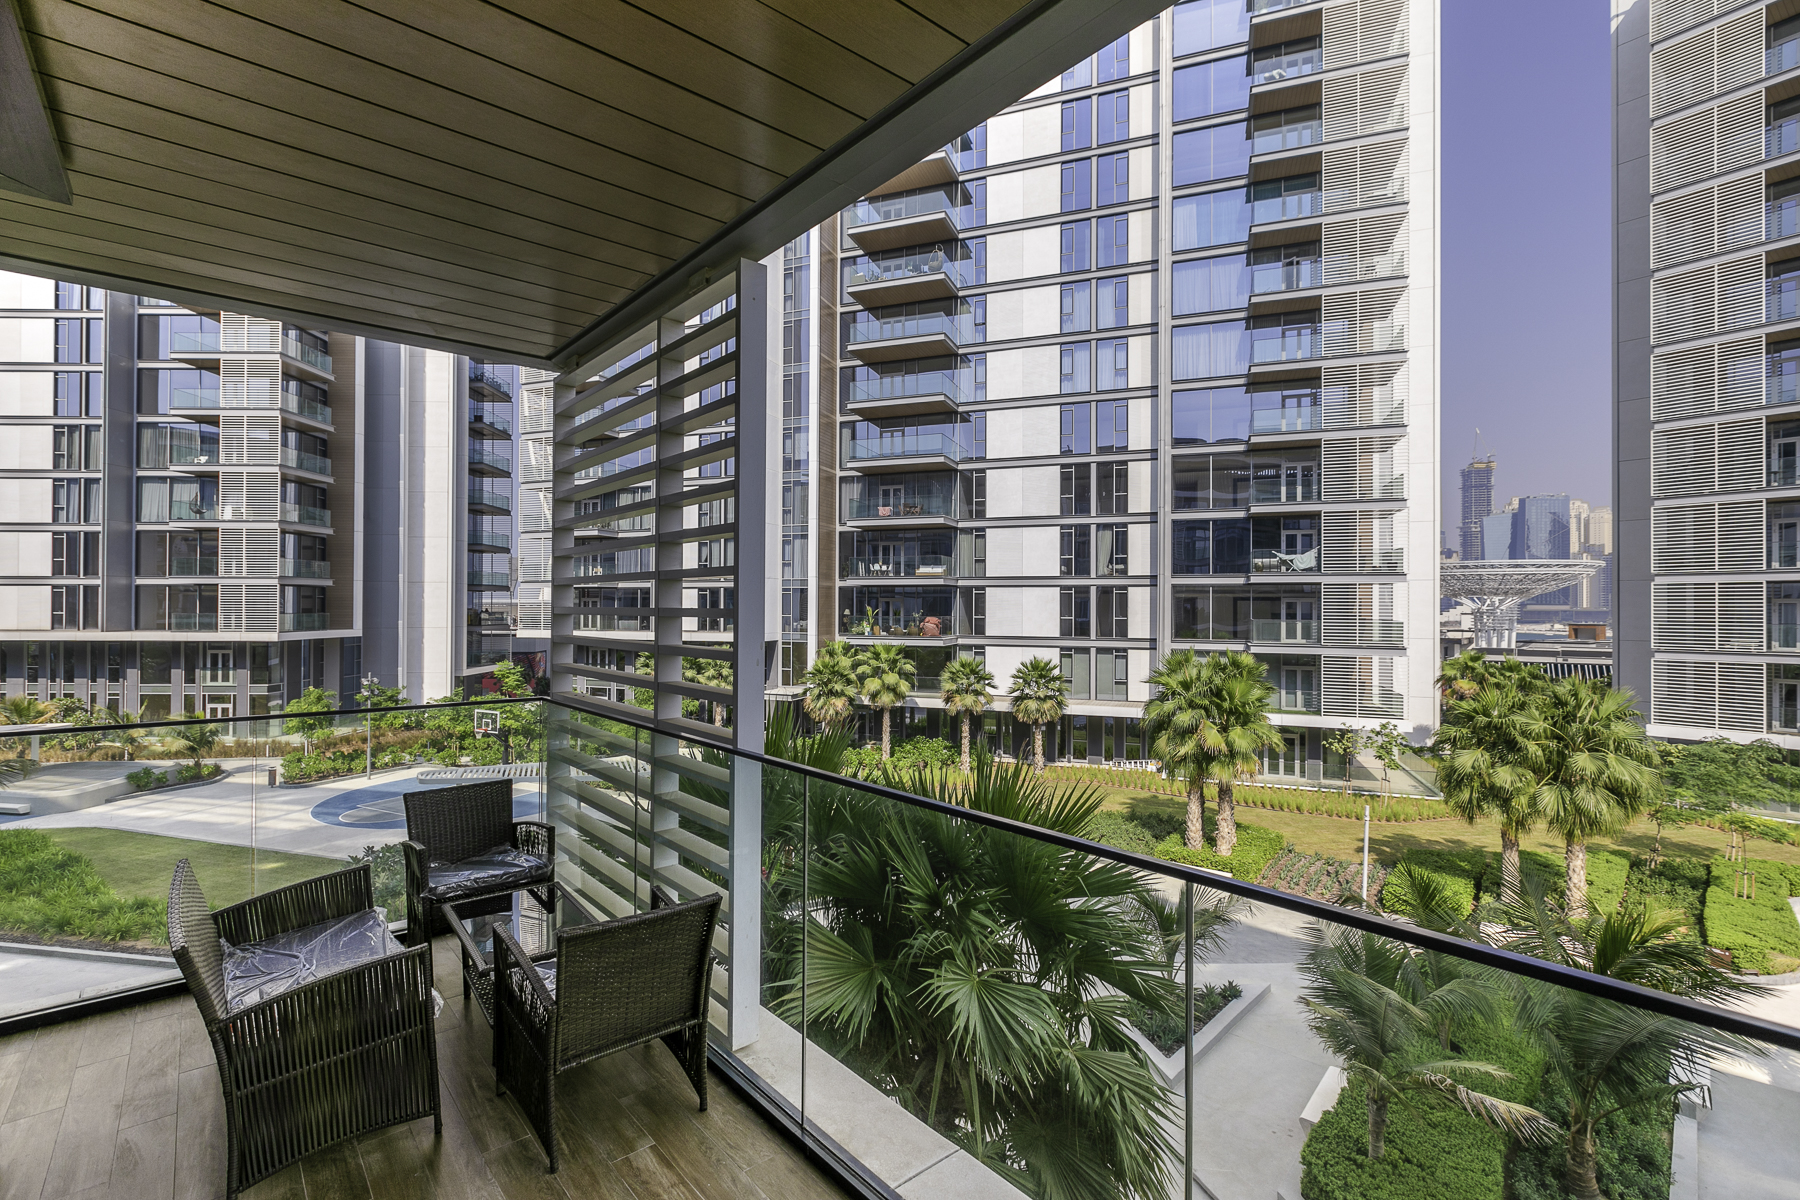 Apartment Experience the Bluewaters lifestyle On This All New 1 Bed in Building 5 photo 21298946